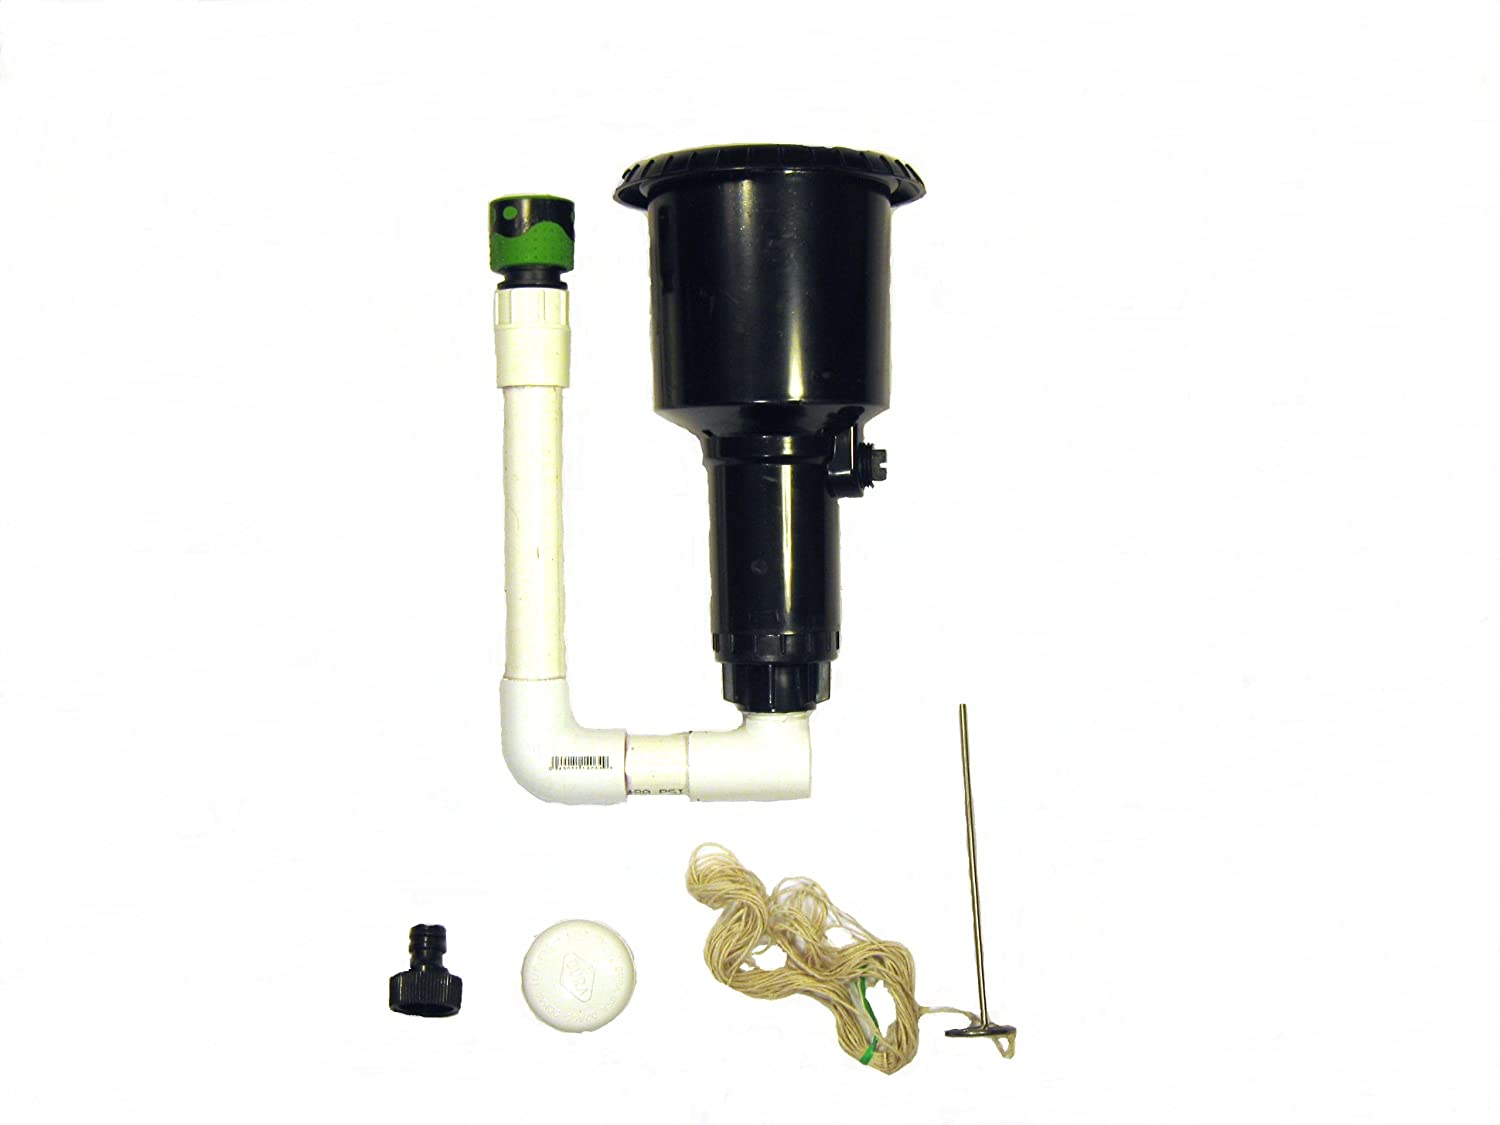 Amazon.com : Snap \u0026 Spray 40264 Sprinkler System, 1 Unit : Lawn ...